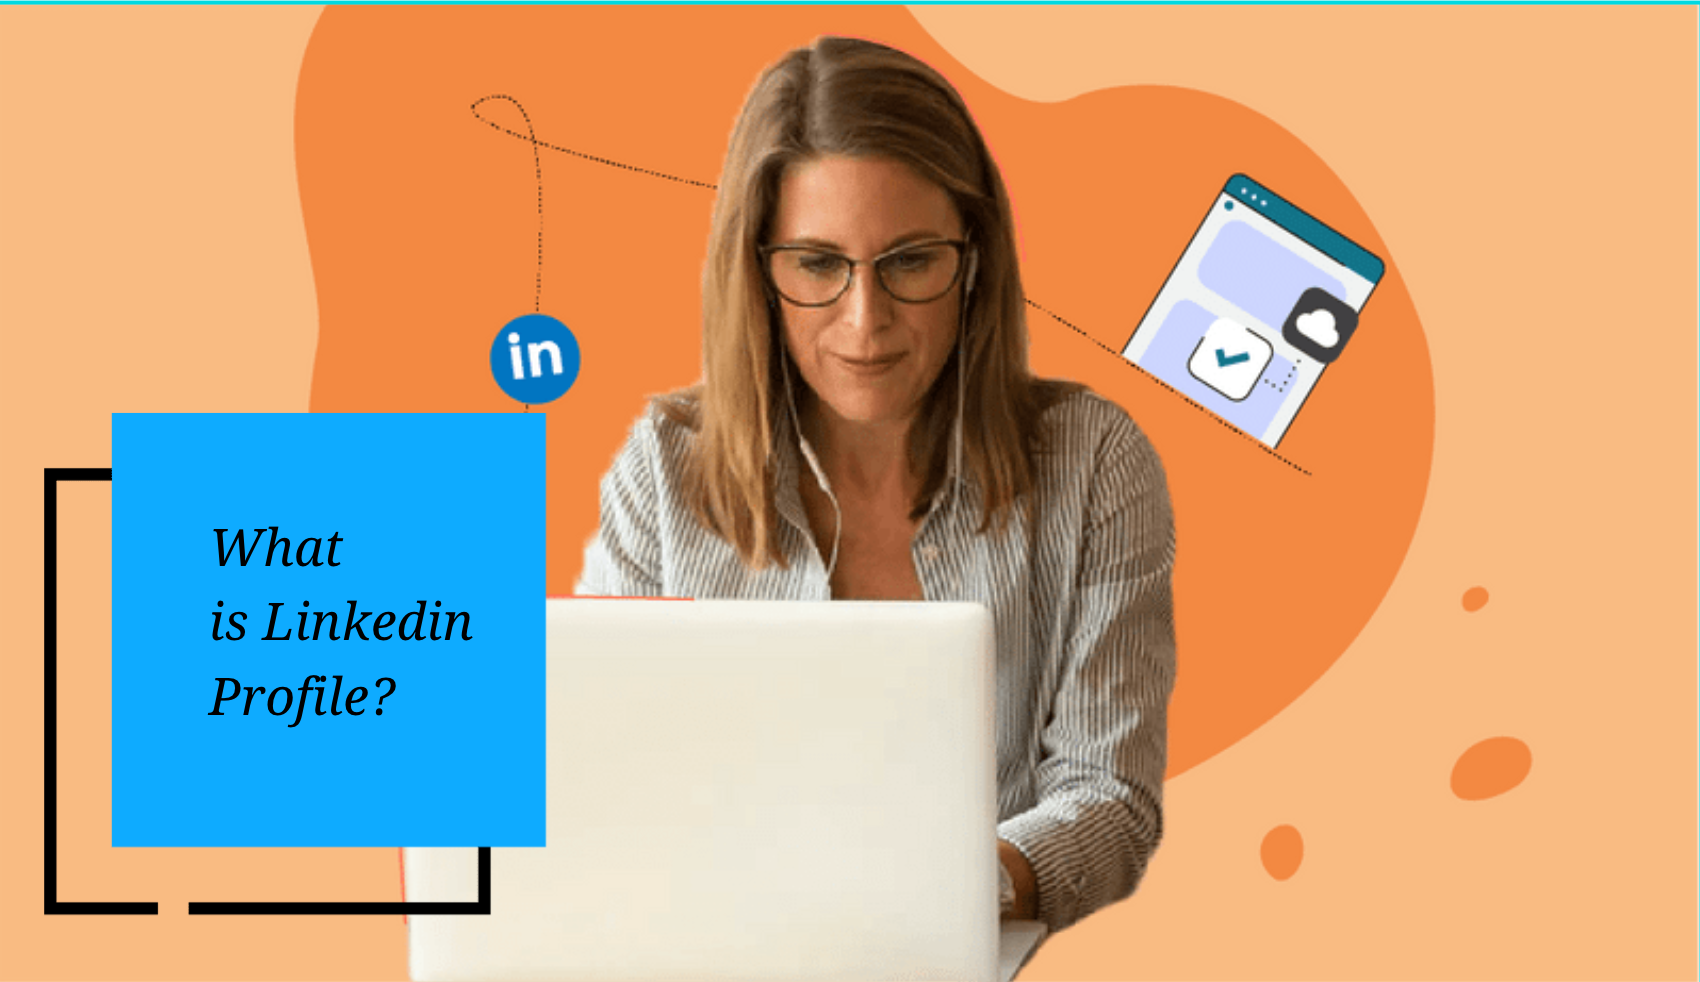 what is a linkedin profile